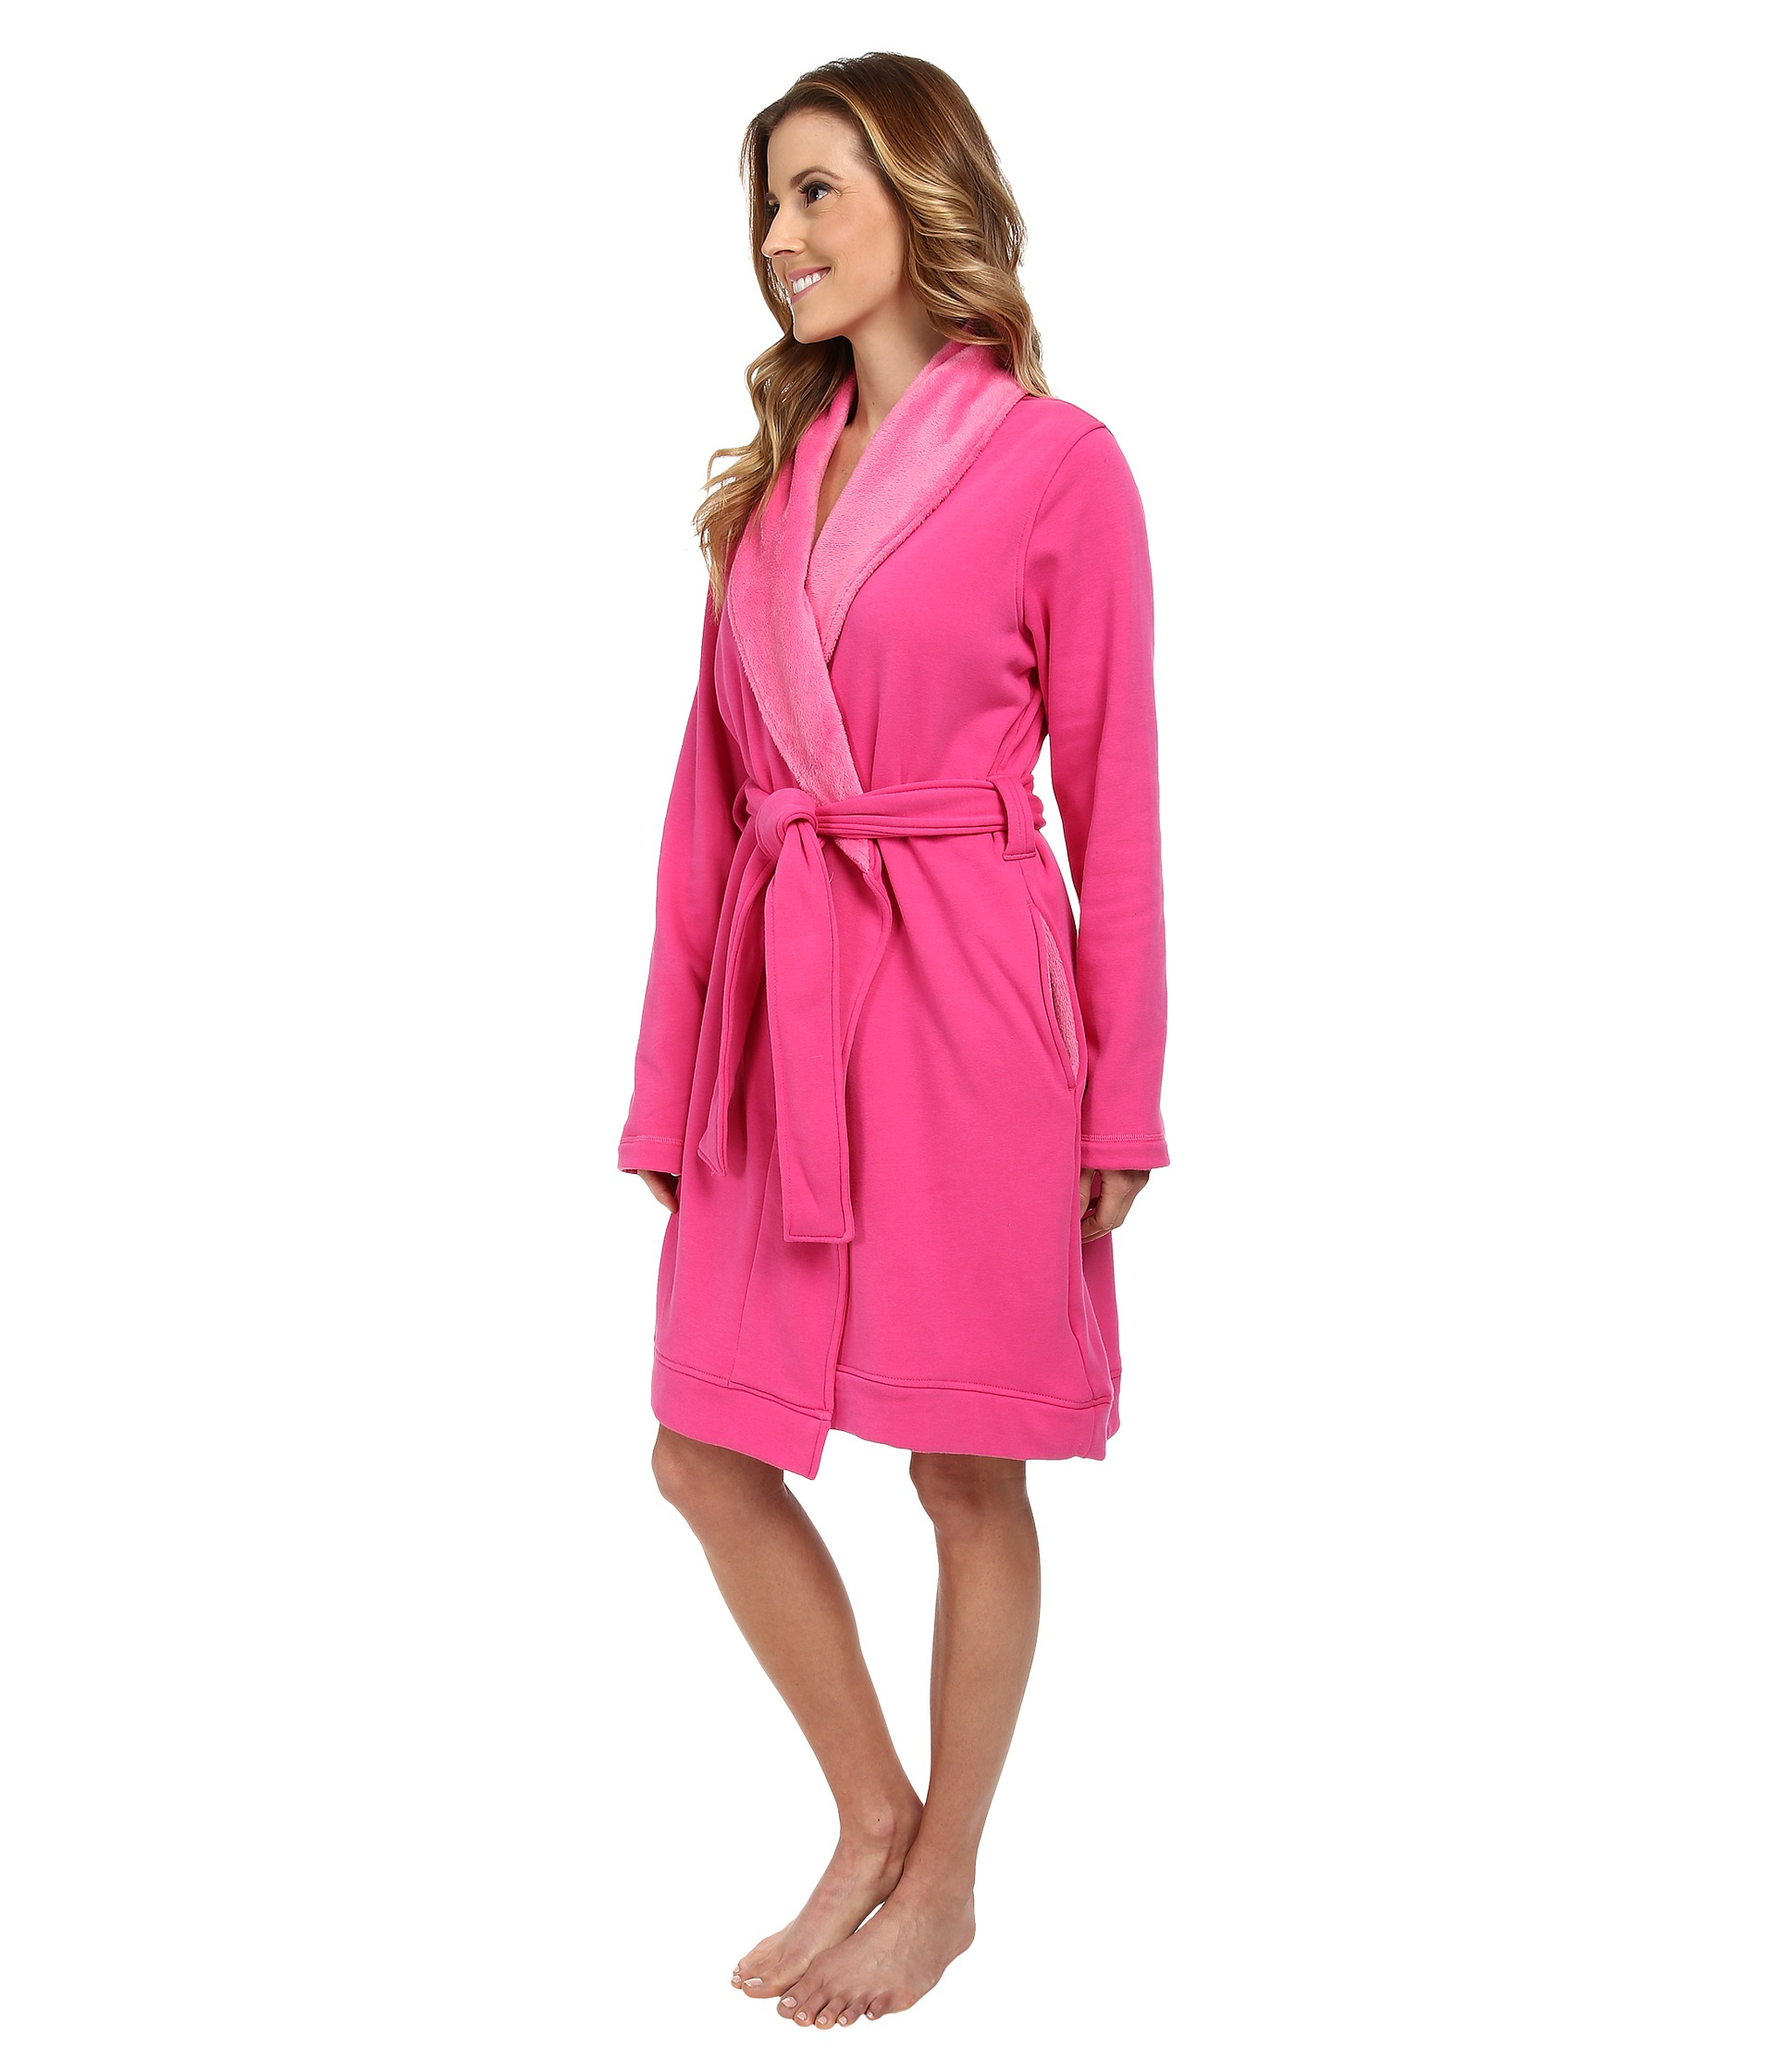 Ugg Womens Robes - cheap watches mgc-gas.com 42d0f5697